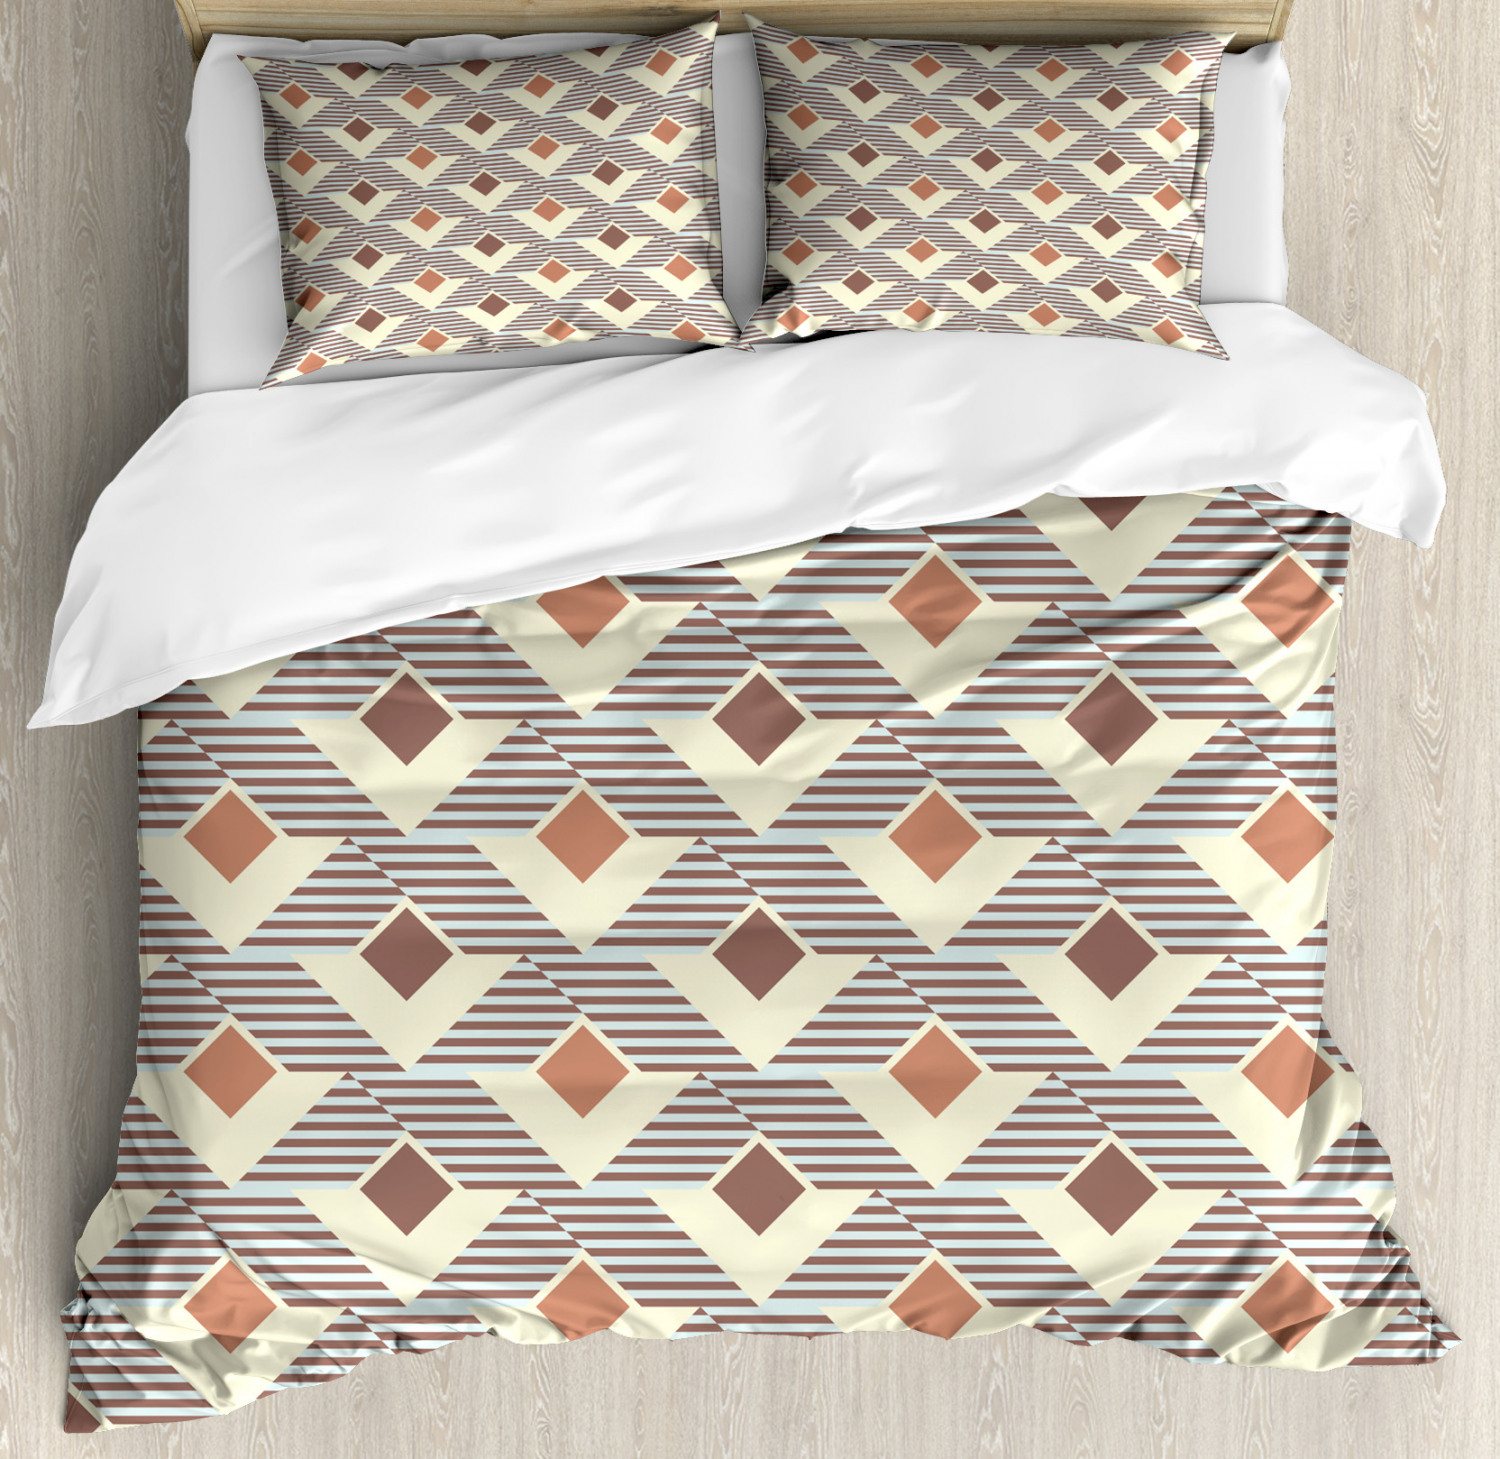 Geometric Duvet Cover Set with Pillow Shams Squares and Stripes Print